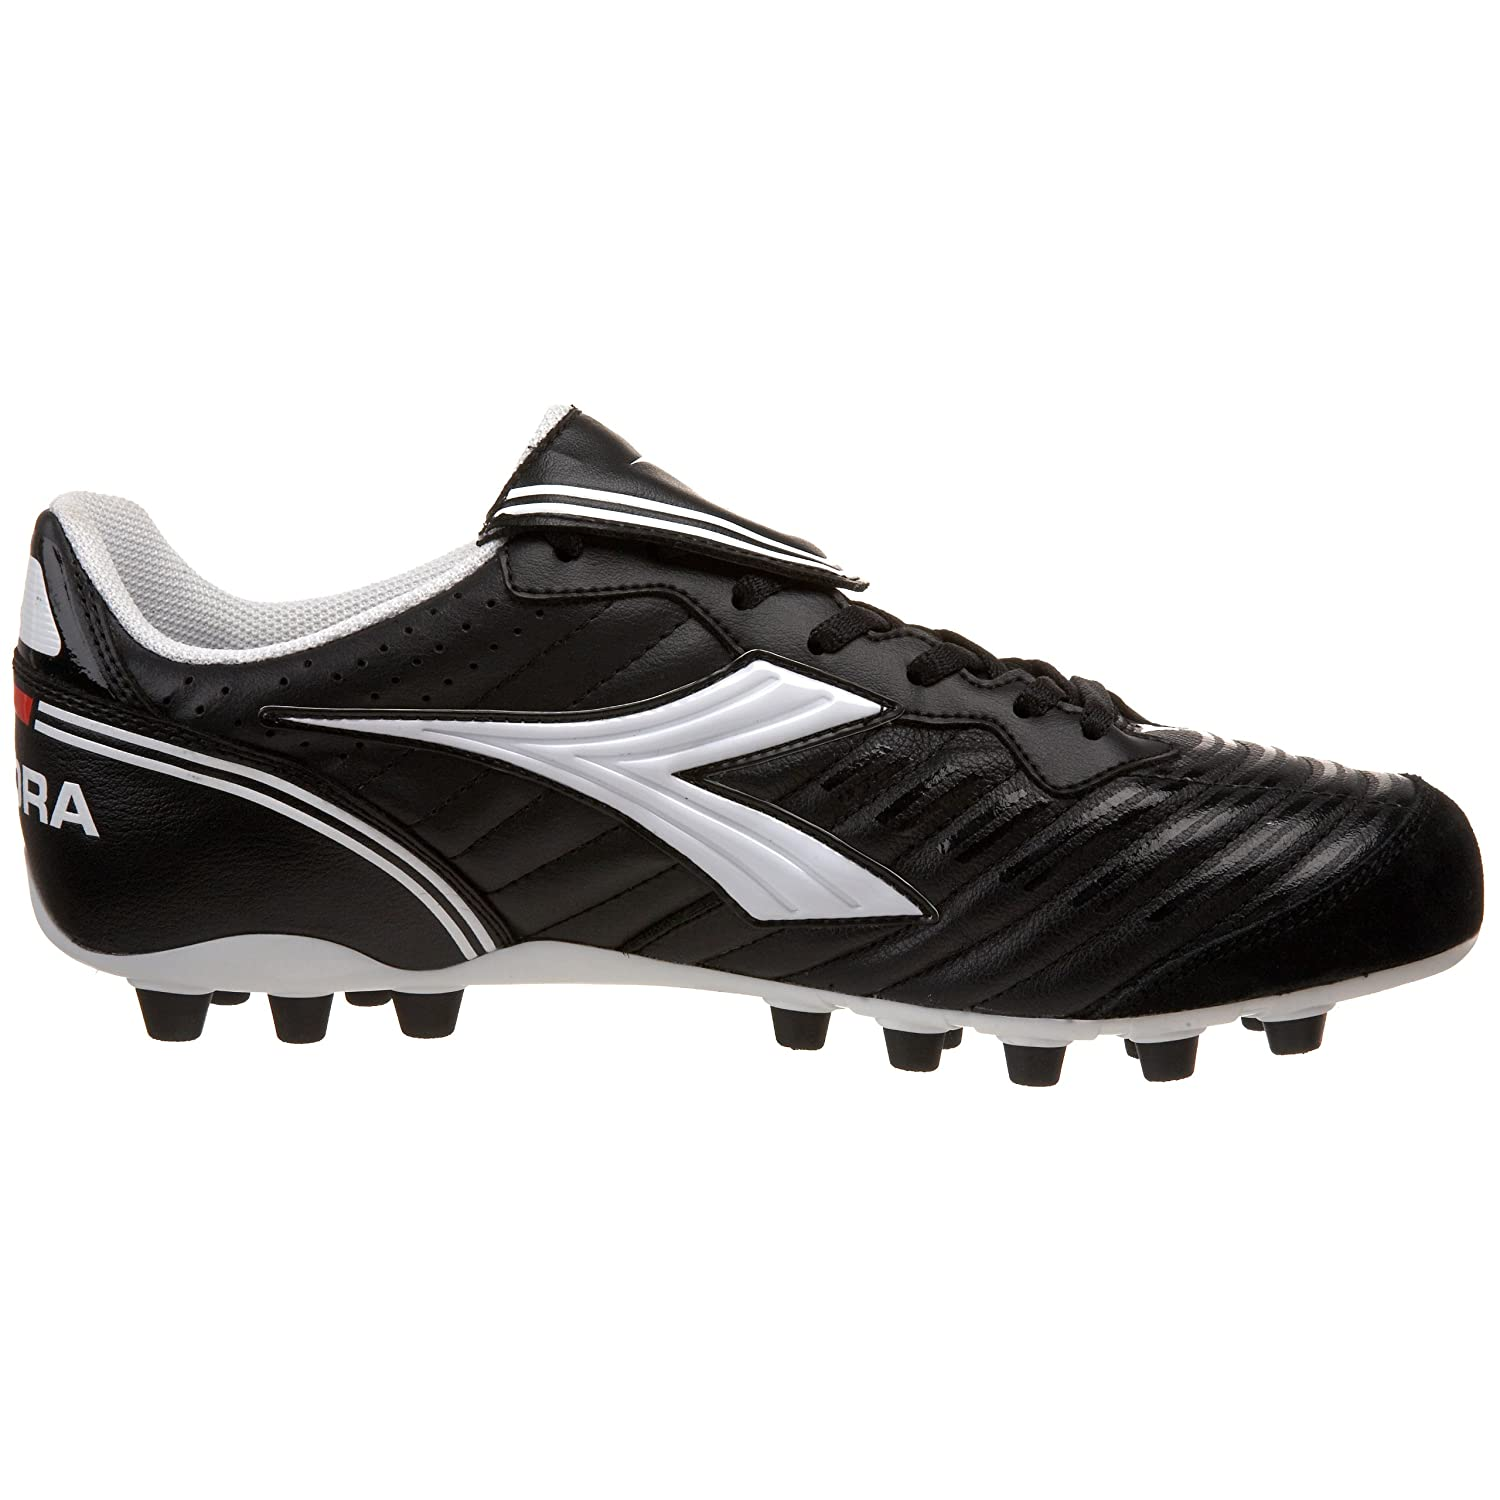 Amazon.com: Diadora Mens Scuddetto LT MD PU 25 Soccer Cleat ...